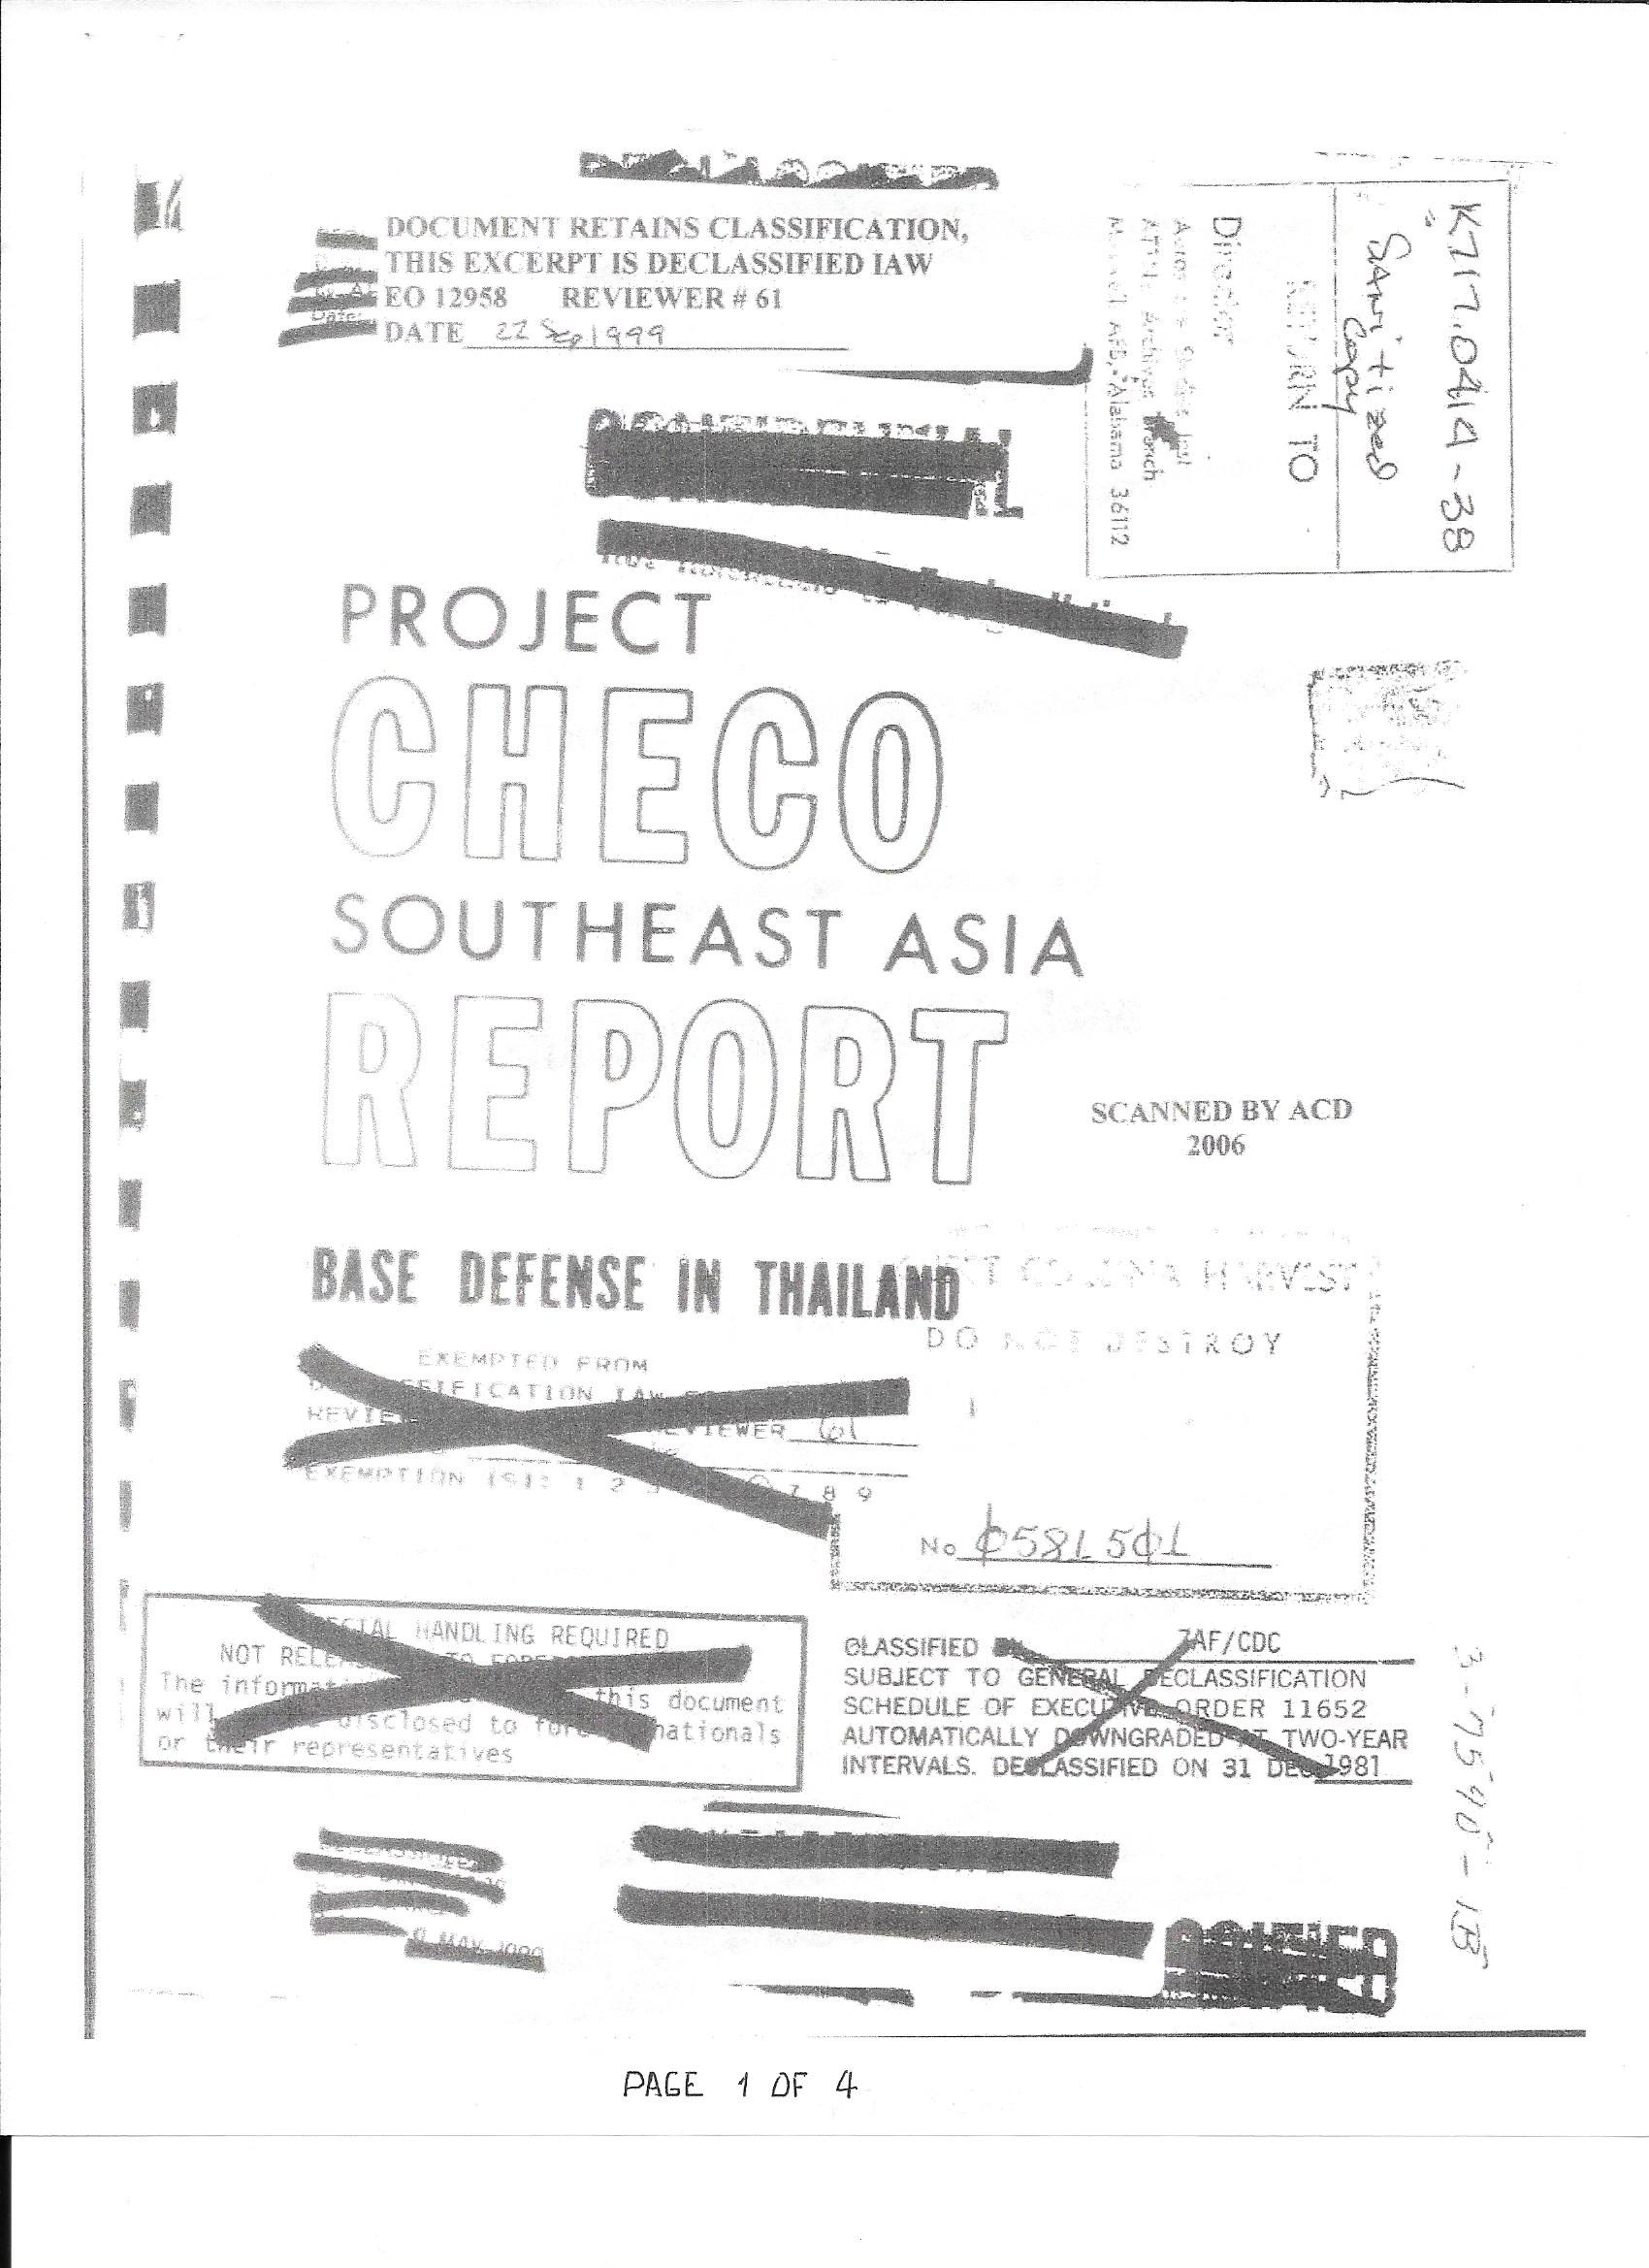 CHECO Report, Base Defense in Thailand, page 1 of 4